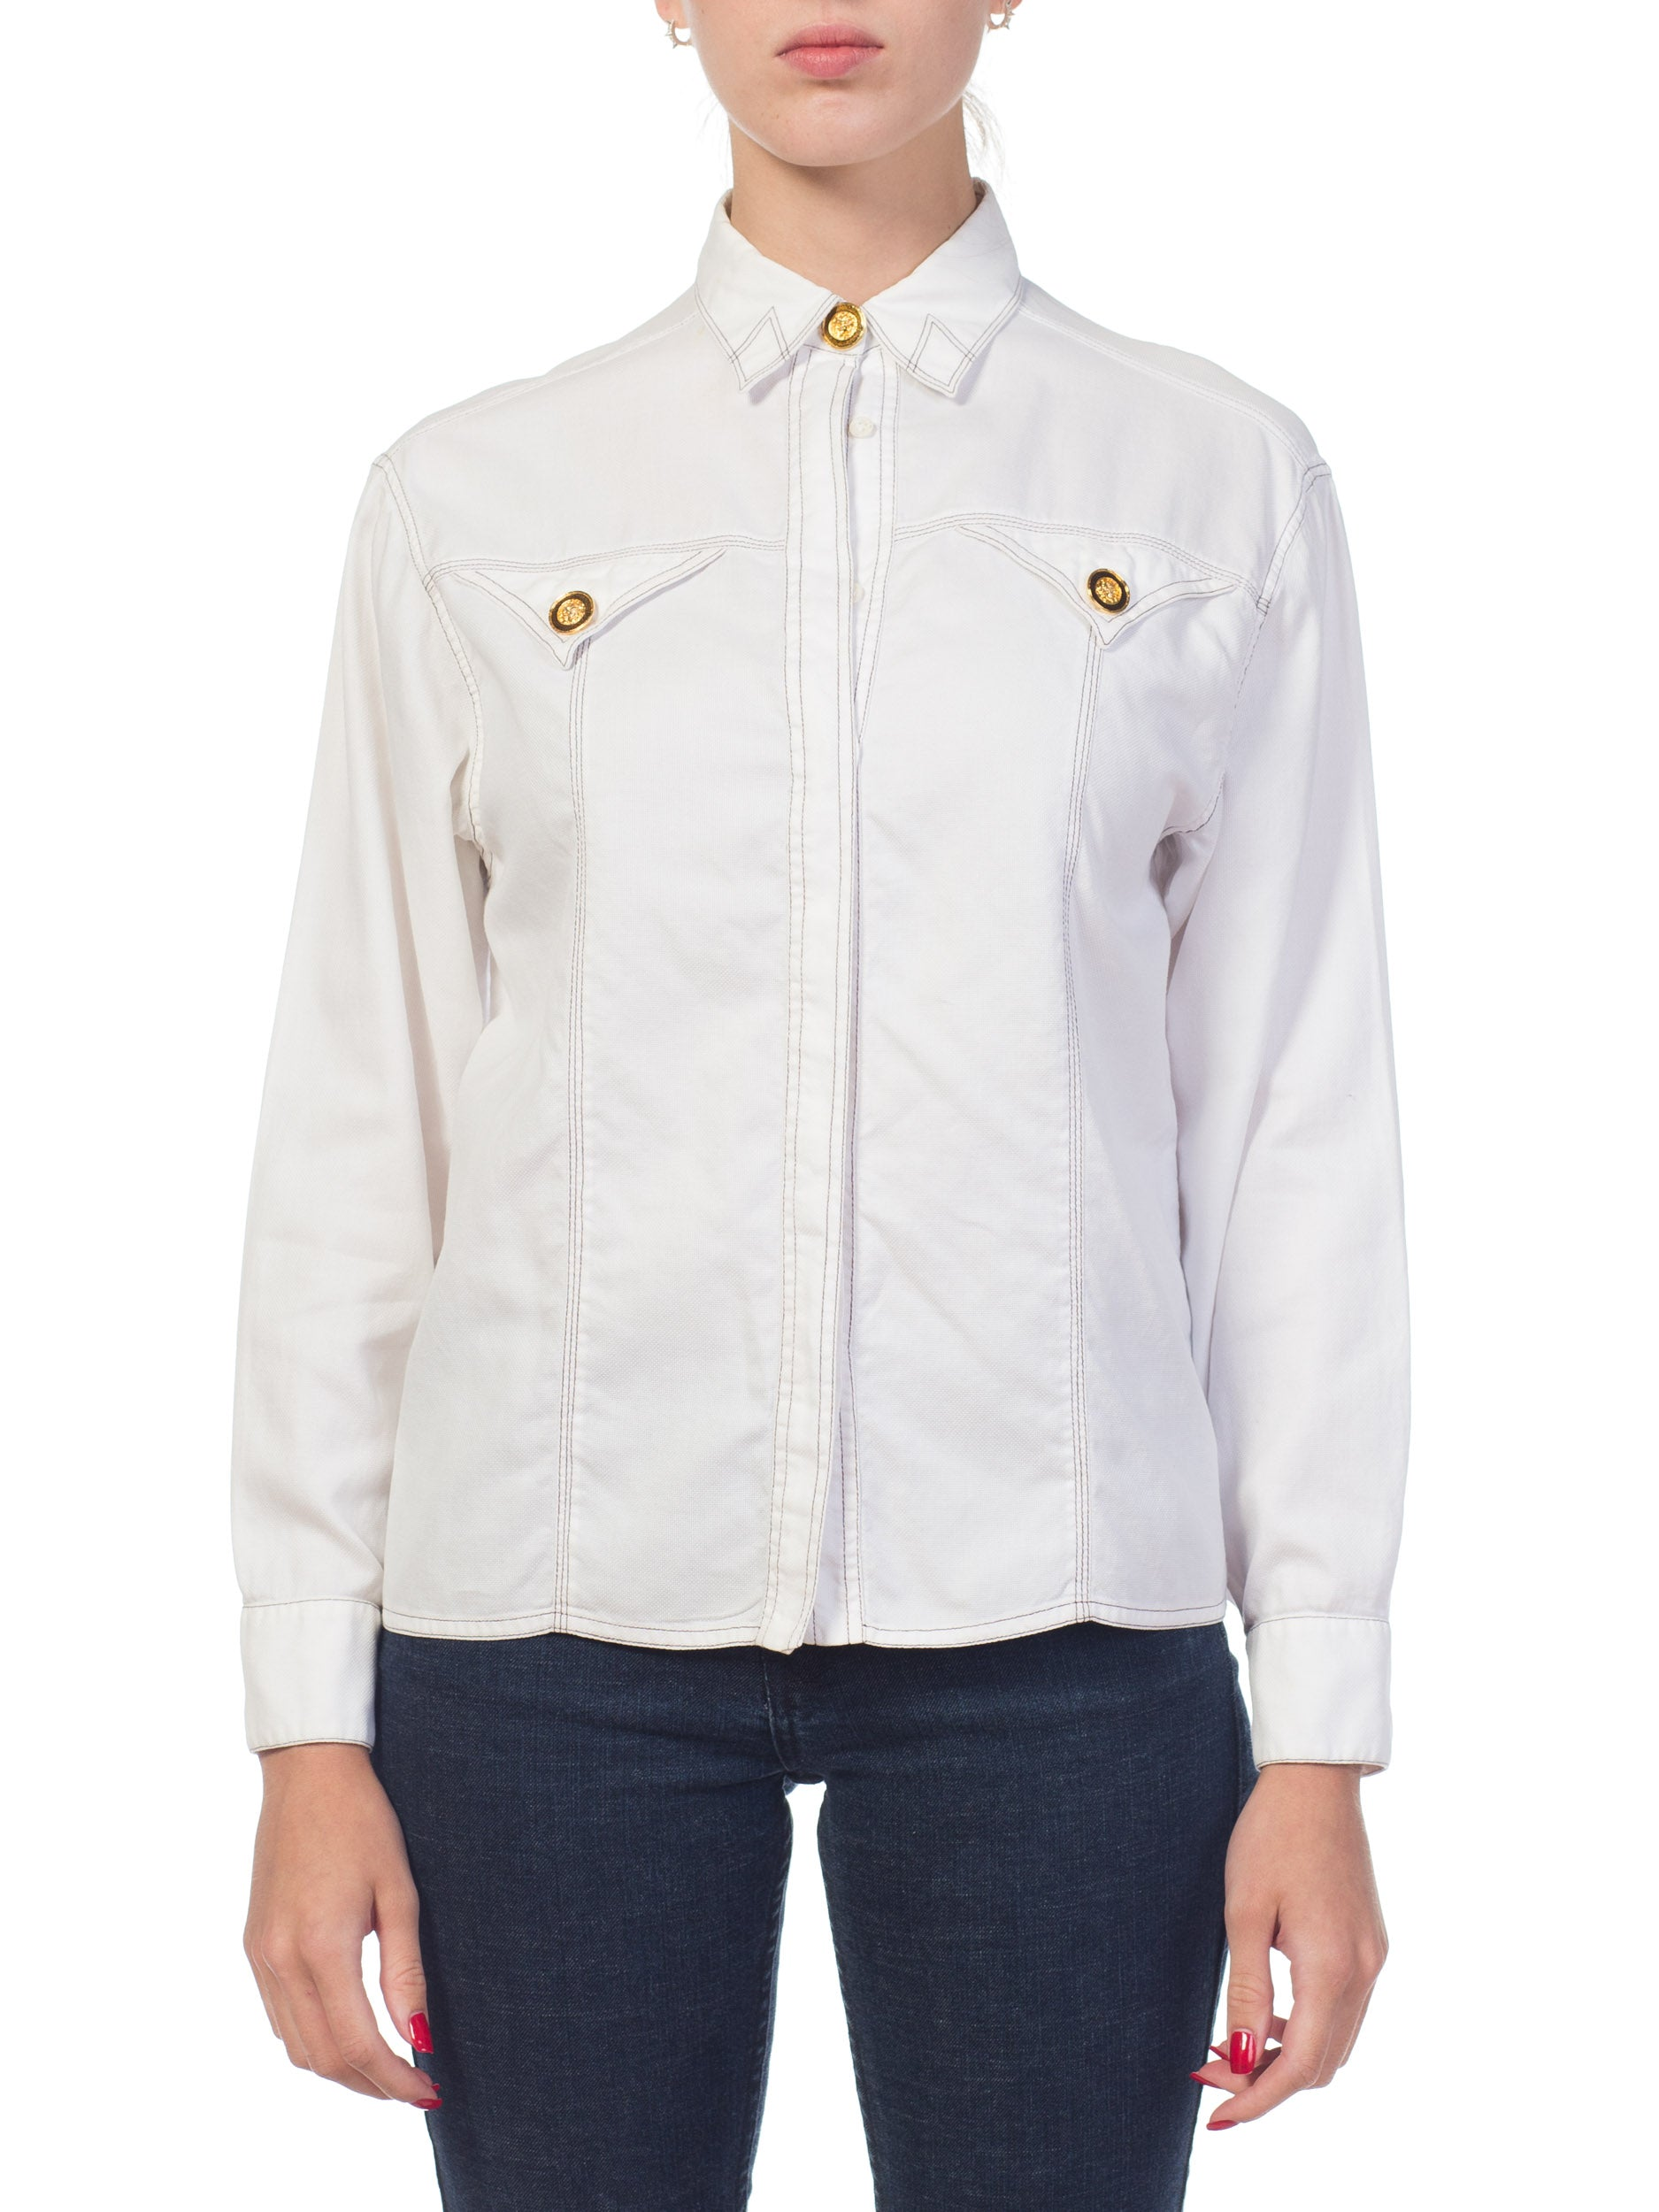 1990S GIANNI VERSACE White Cotton Piqué Contrast Stitch Shirt With Gold Medusa Buttons, Sz 42